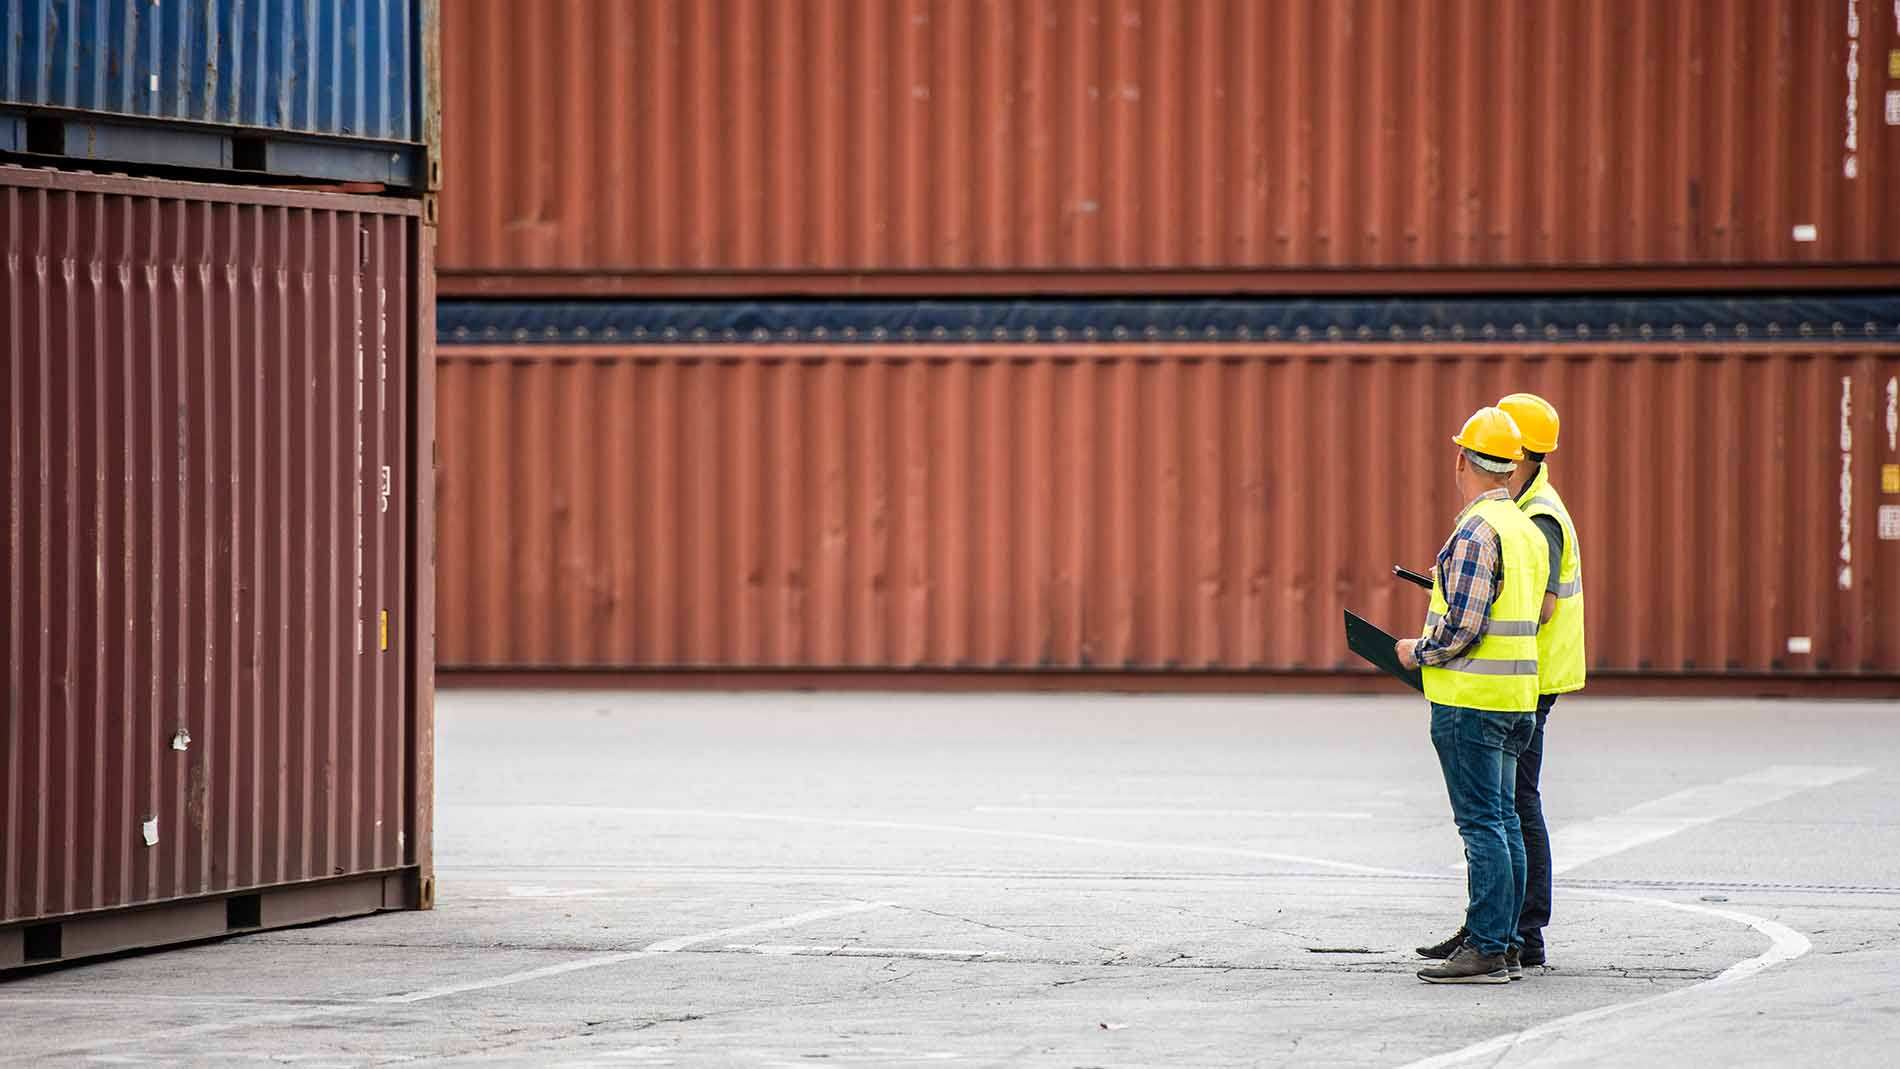 two men in front of containers